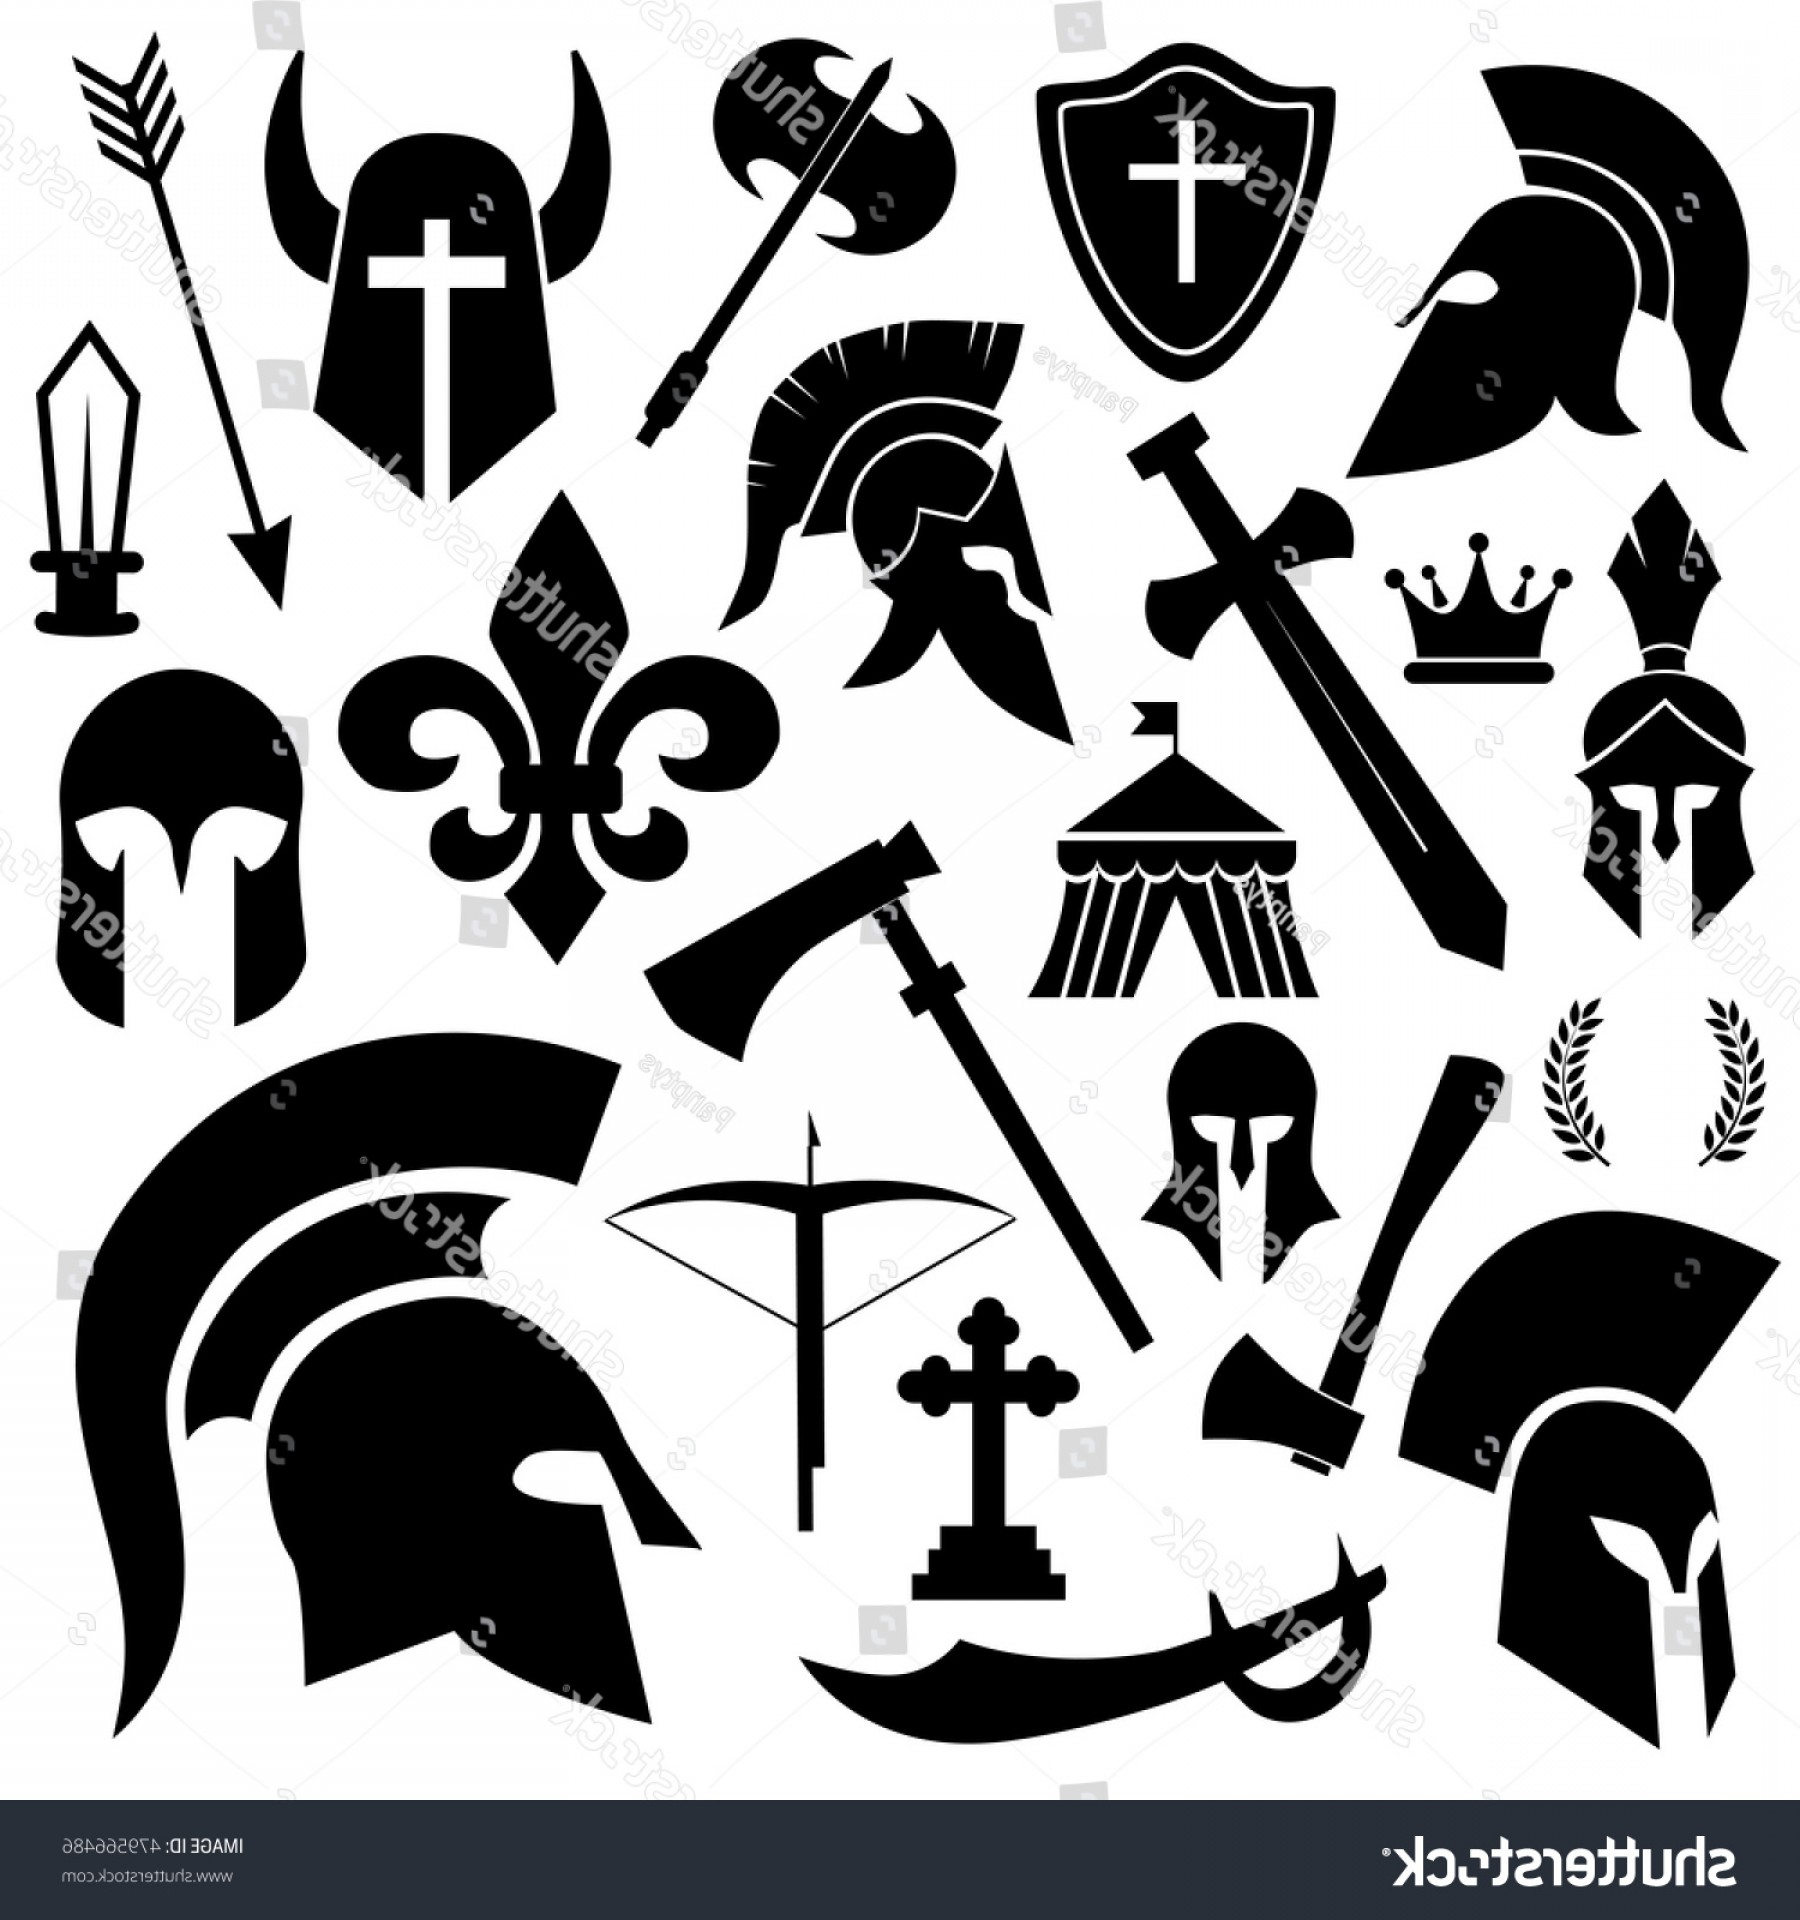 Warrior Vector Art: Ancient Knight Warrior Soldier Icon Set